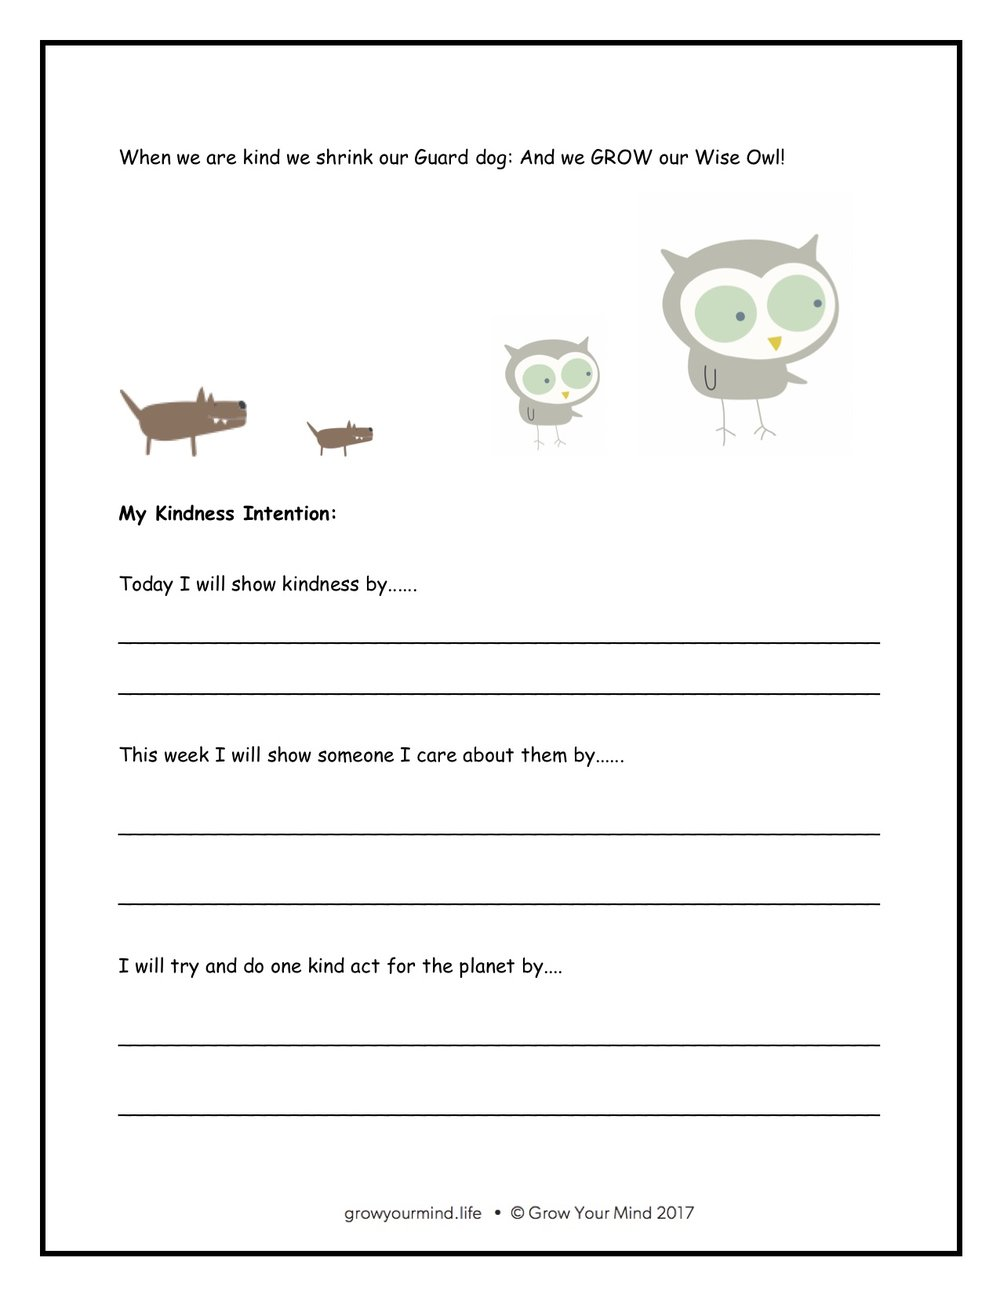 Kindness - Year 2-6 x 3 worksheets with a kindness theme